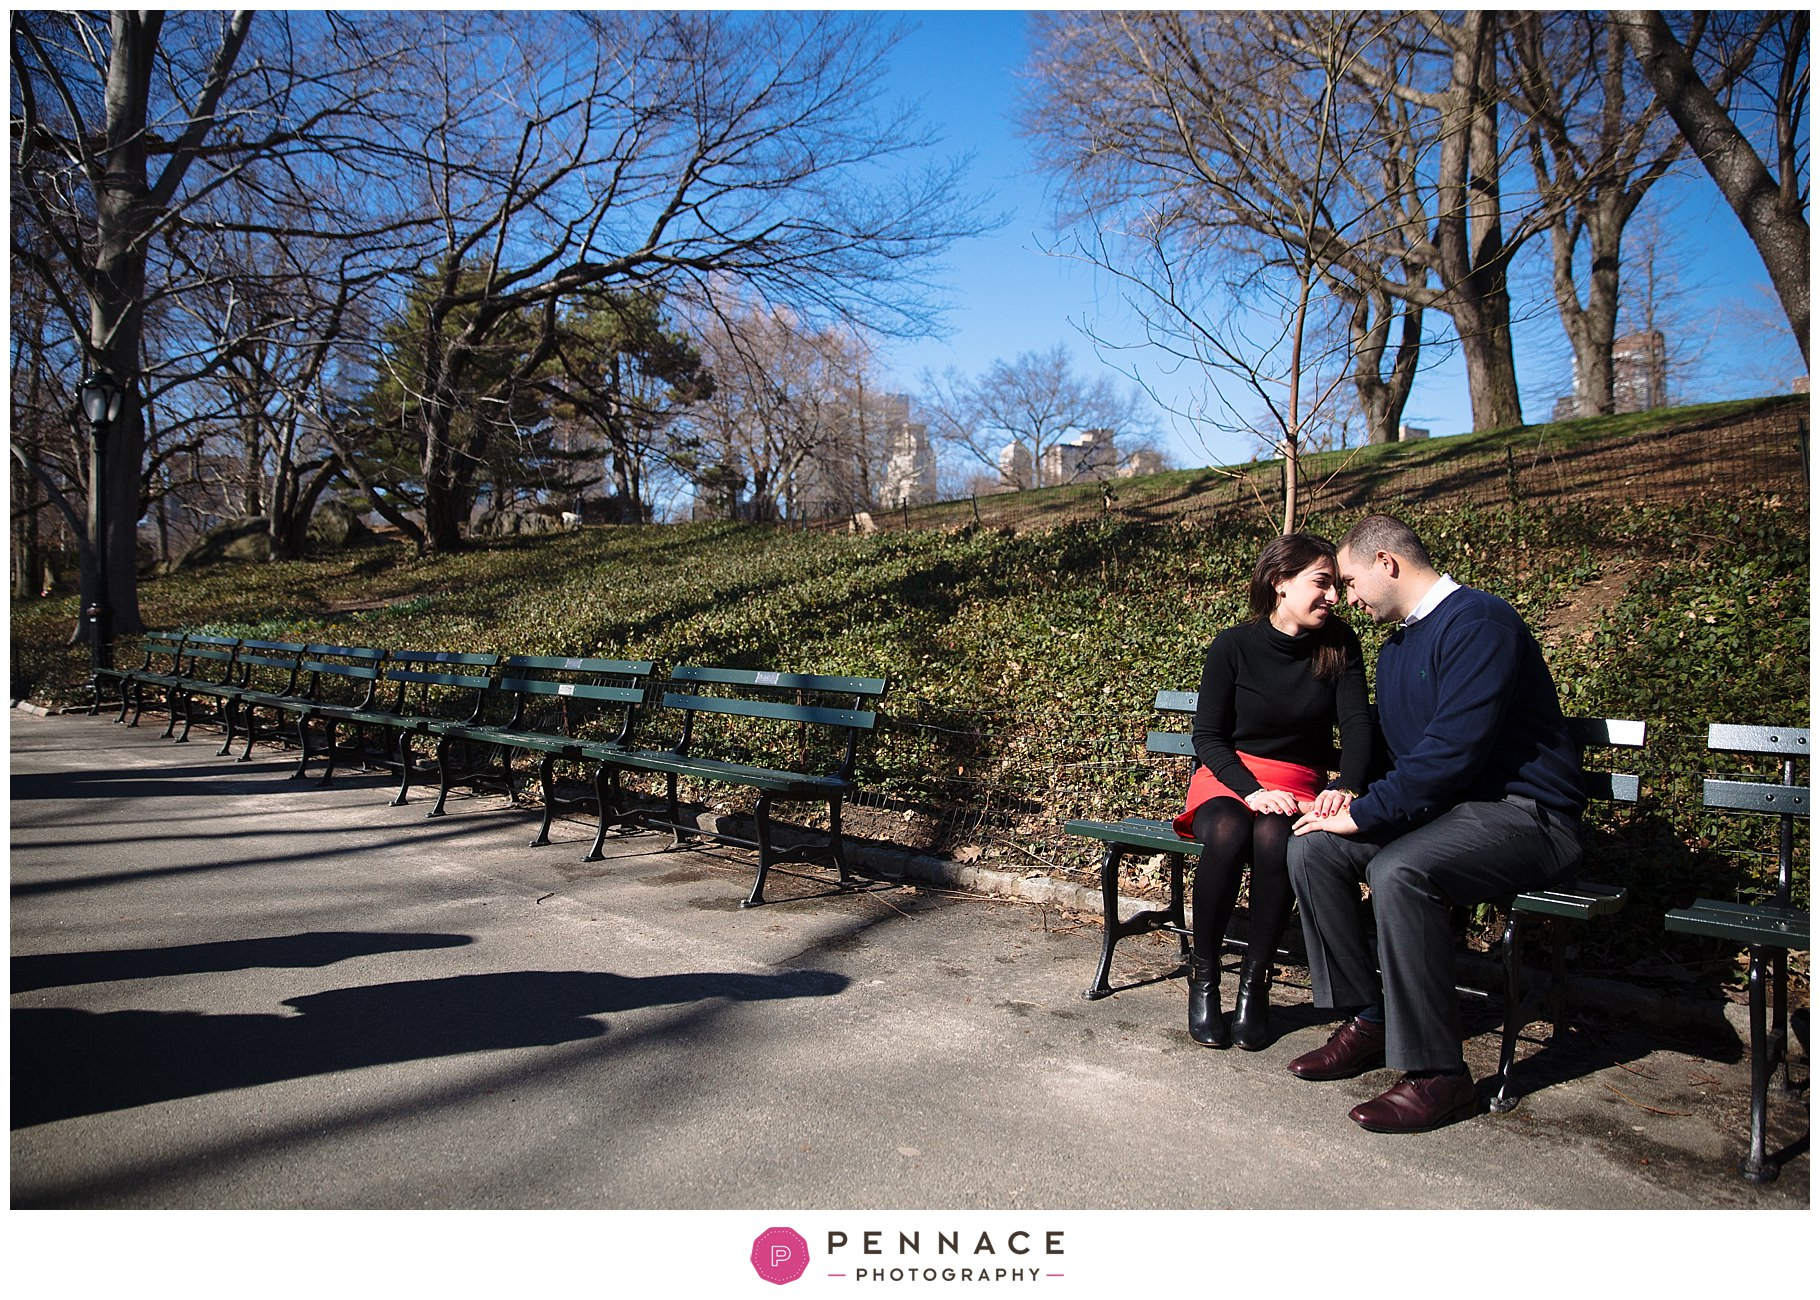 Getting engaged in NYC